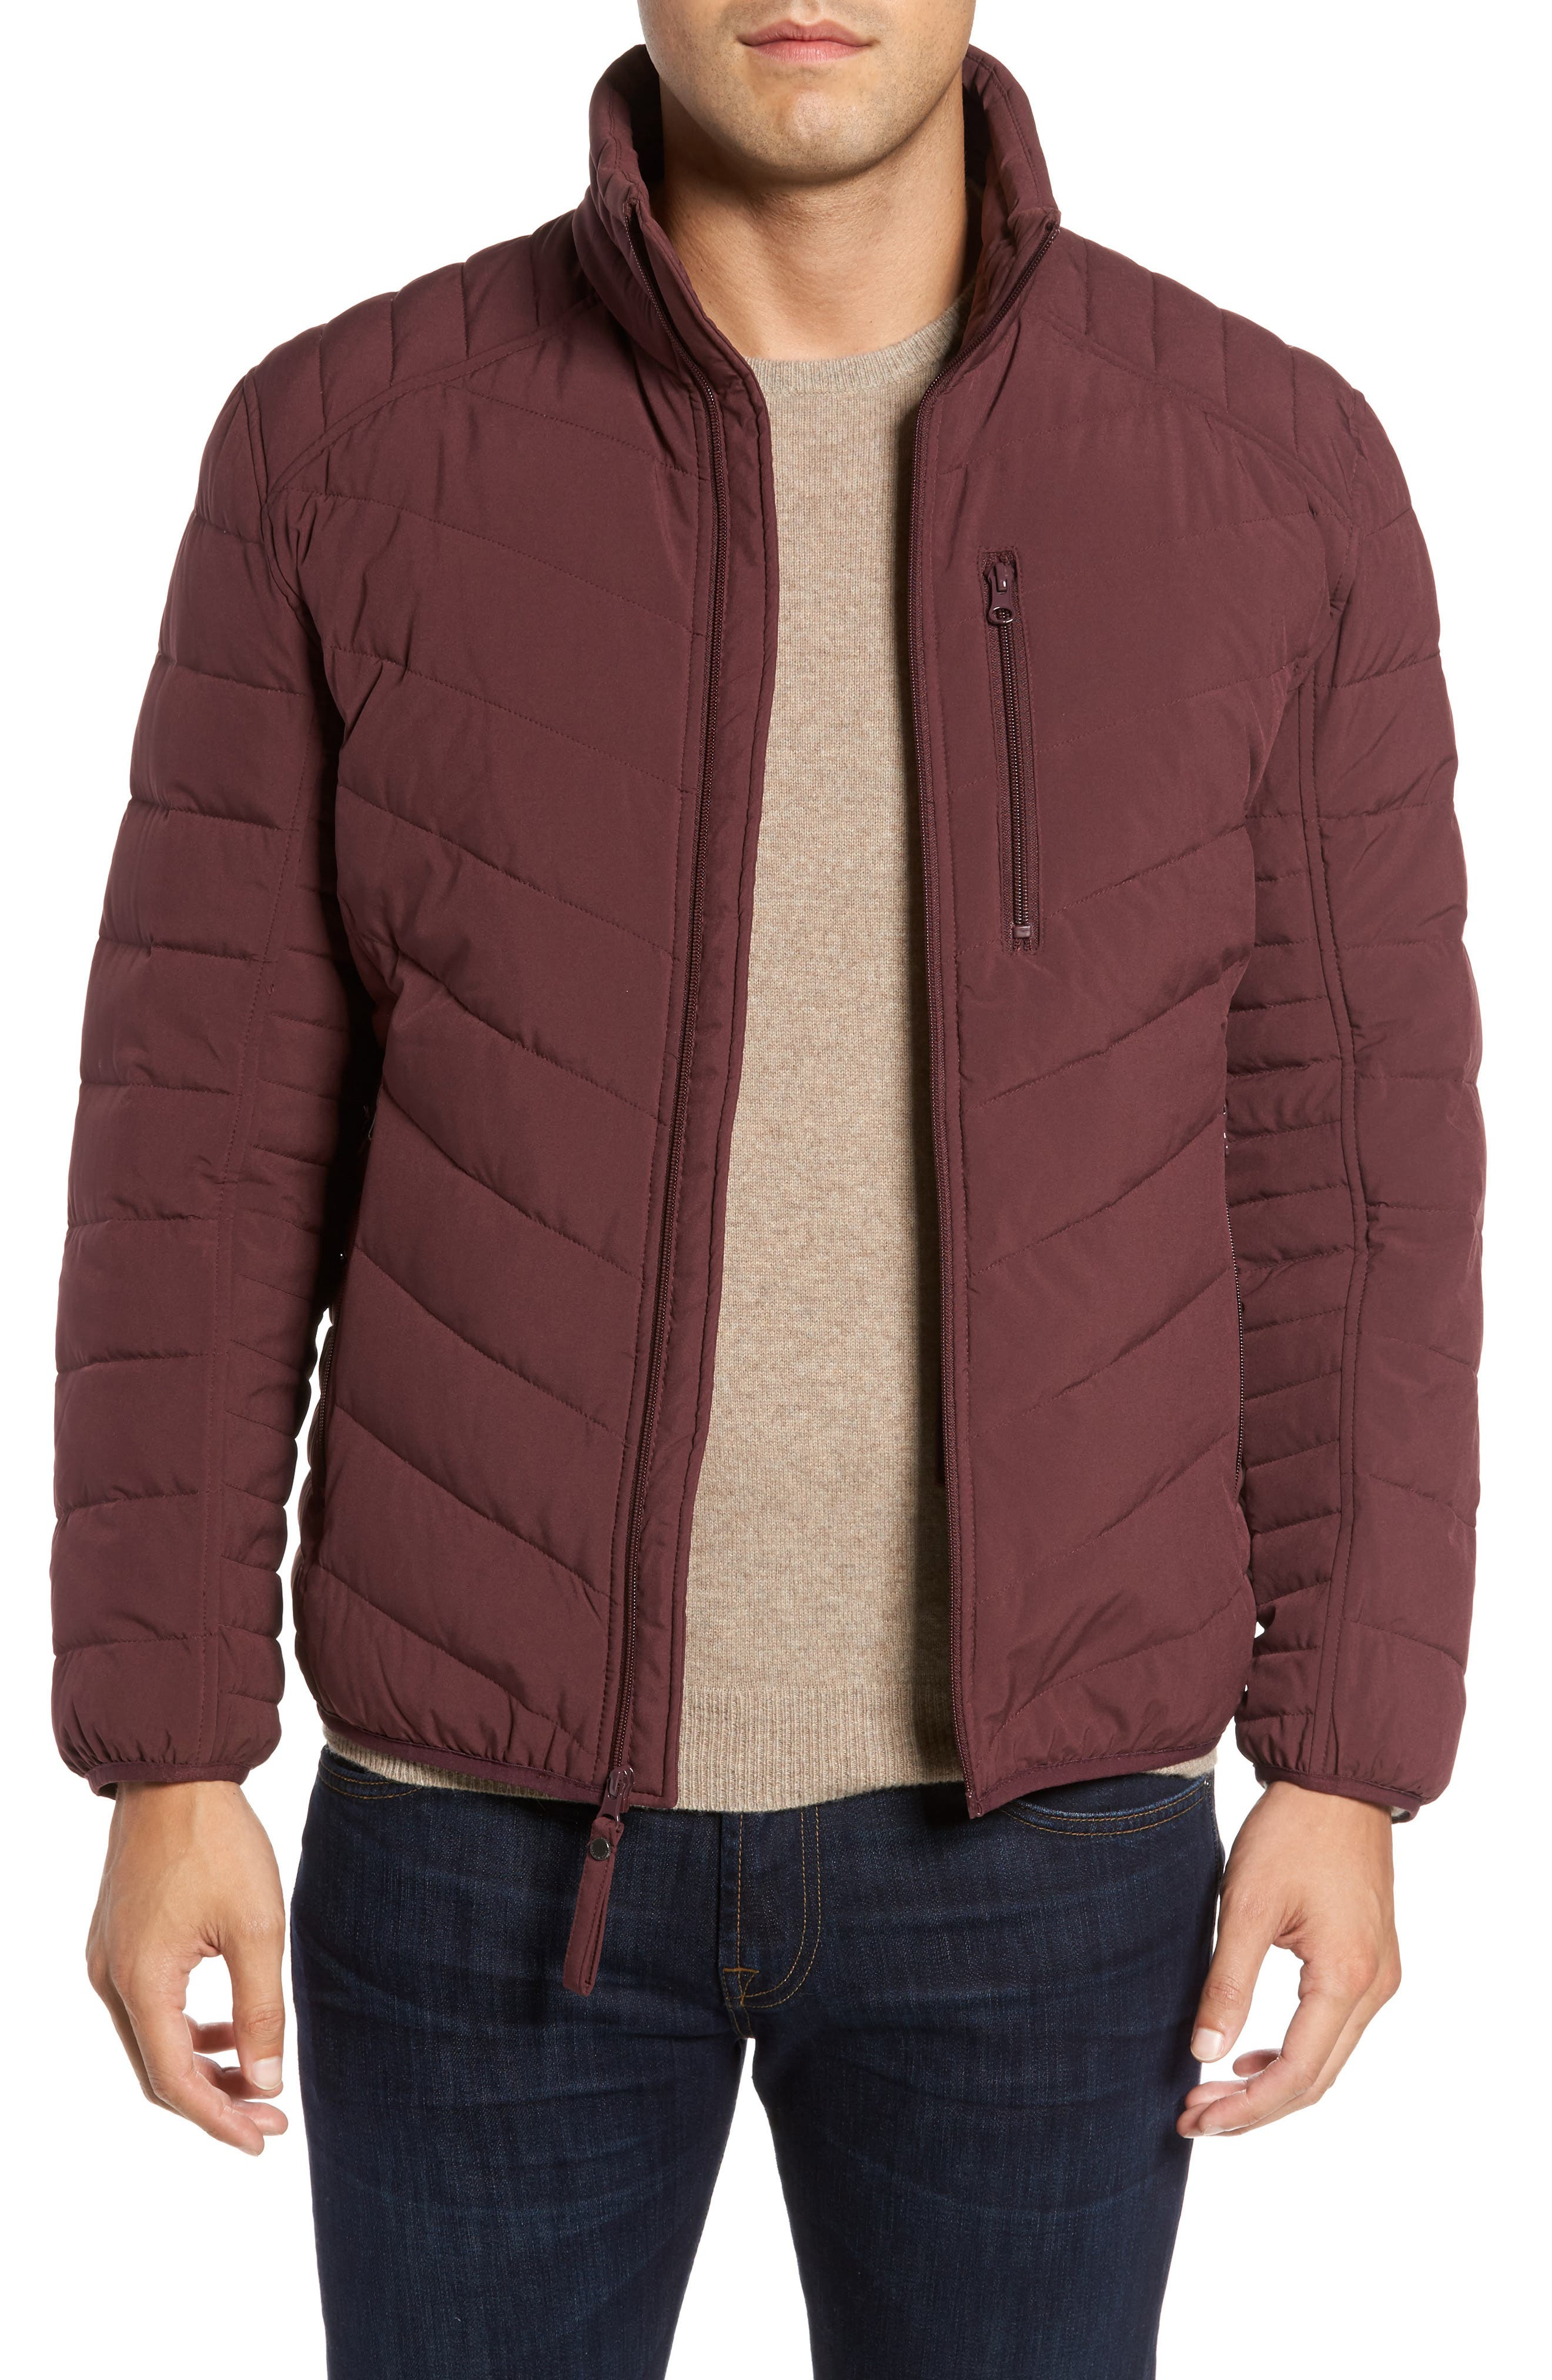 Alternate Image 1 Selected - Marc New York Stretch Packable Down Jacket